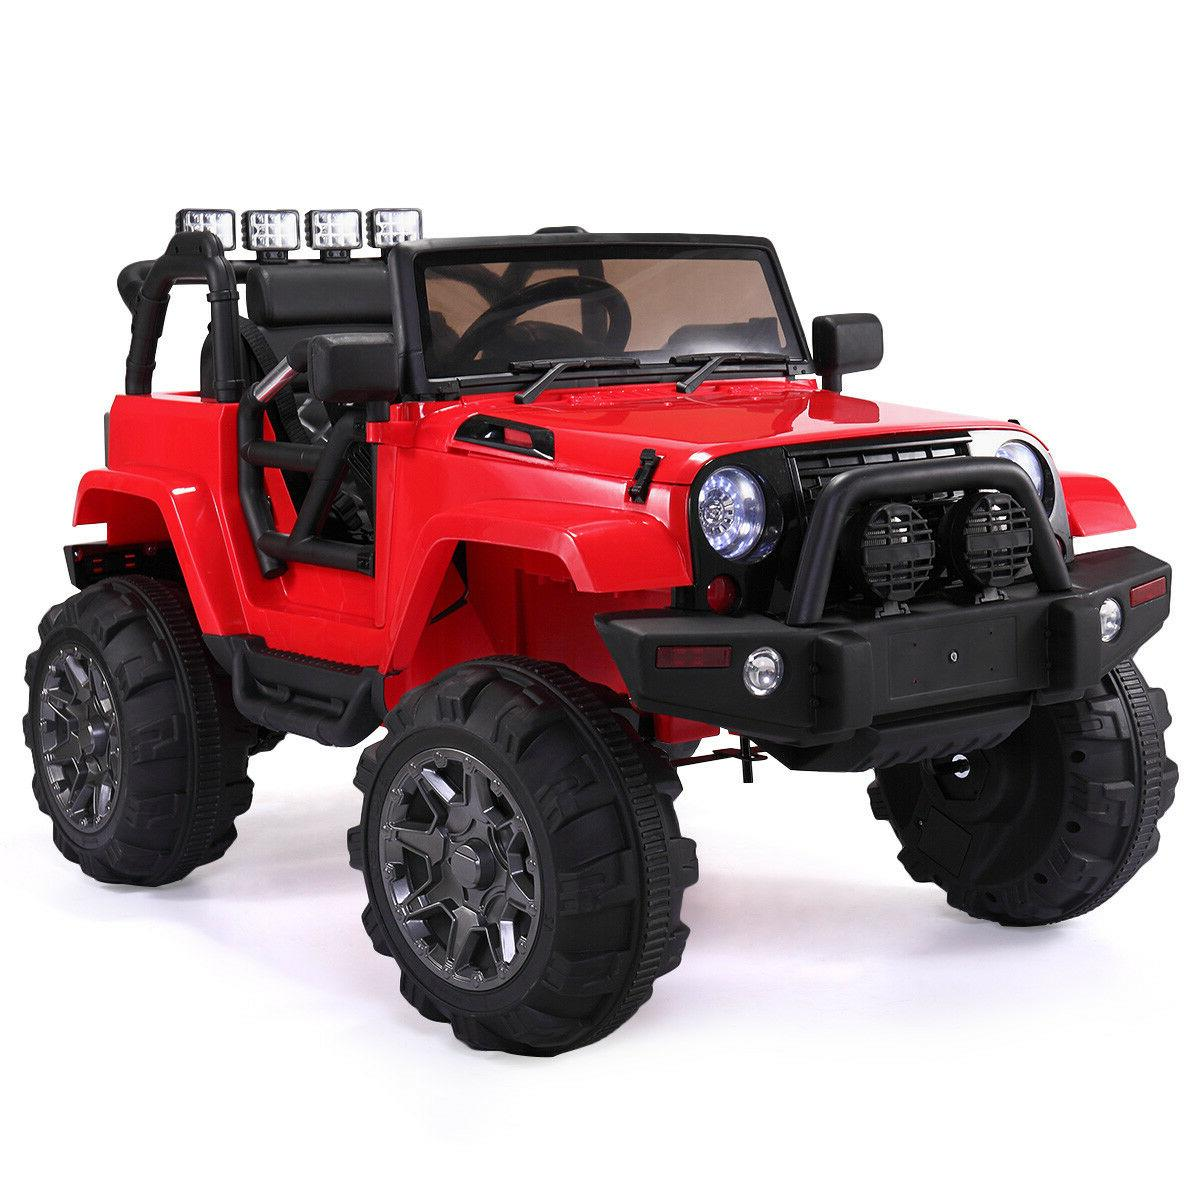 Red Ride Car Battery, Remote Control